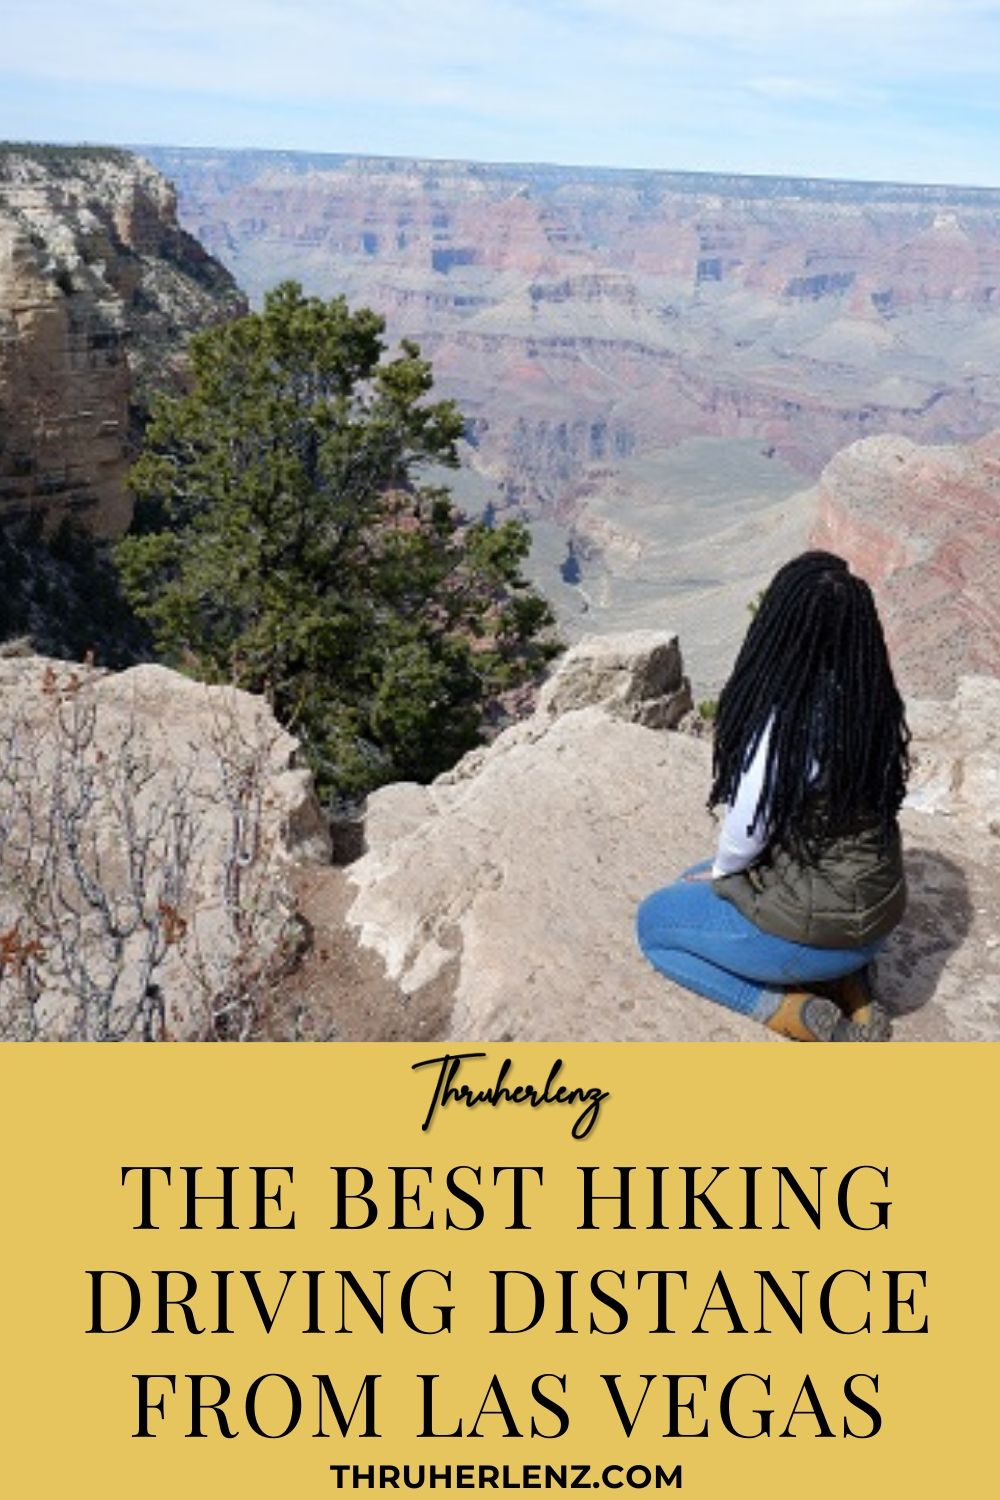 Black Girls Hike Too: Leaving Las Vegas For an Outdoor Adventure